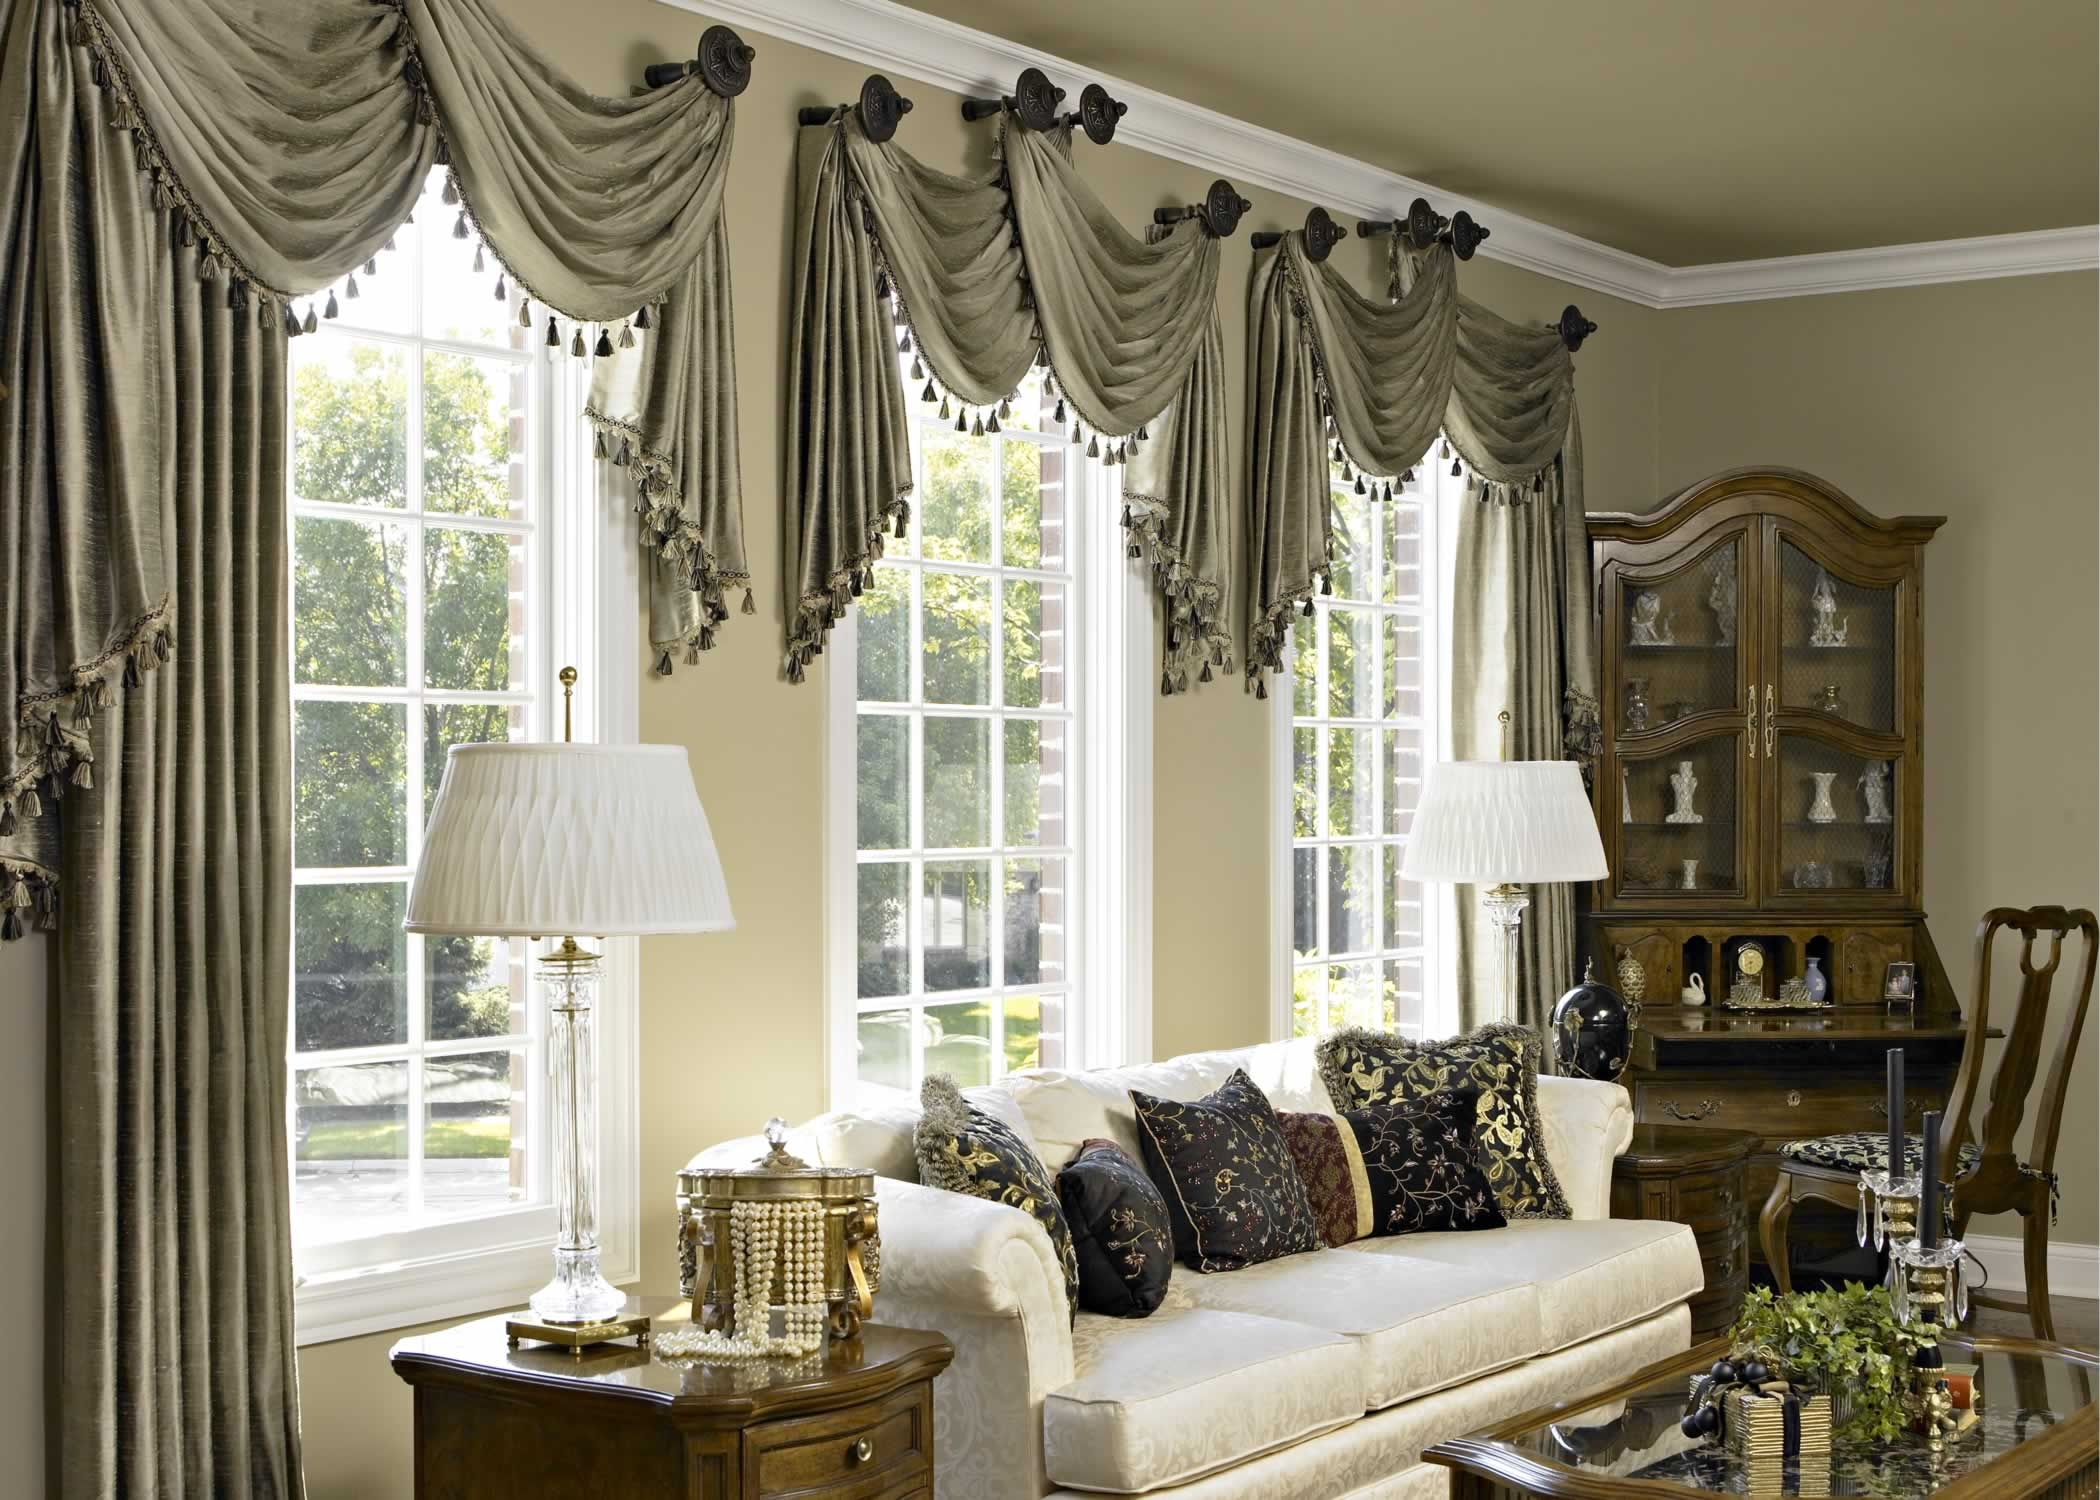 Elegant Cool Window Valance Ideas For Room Interior Decorating Design In Curtain Valance window valance ideas living room